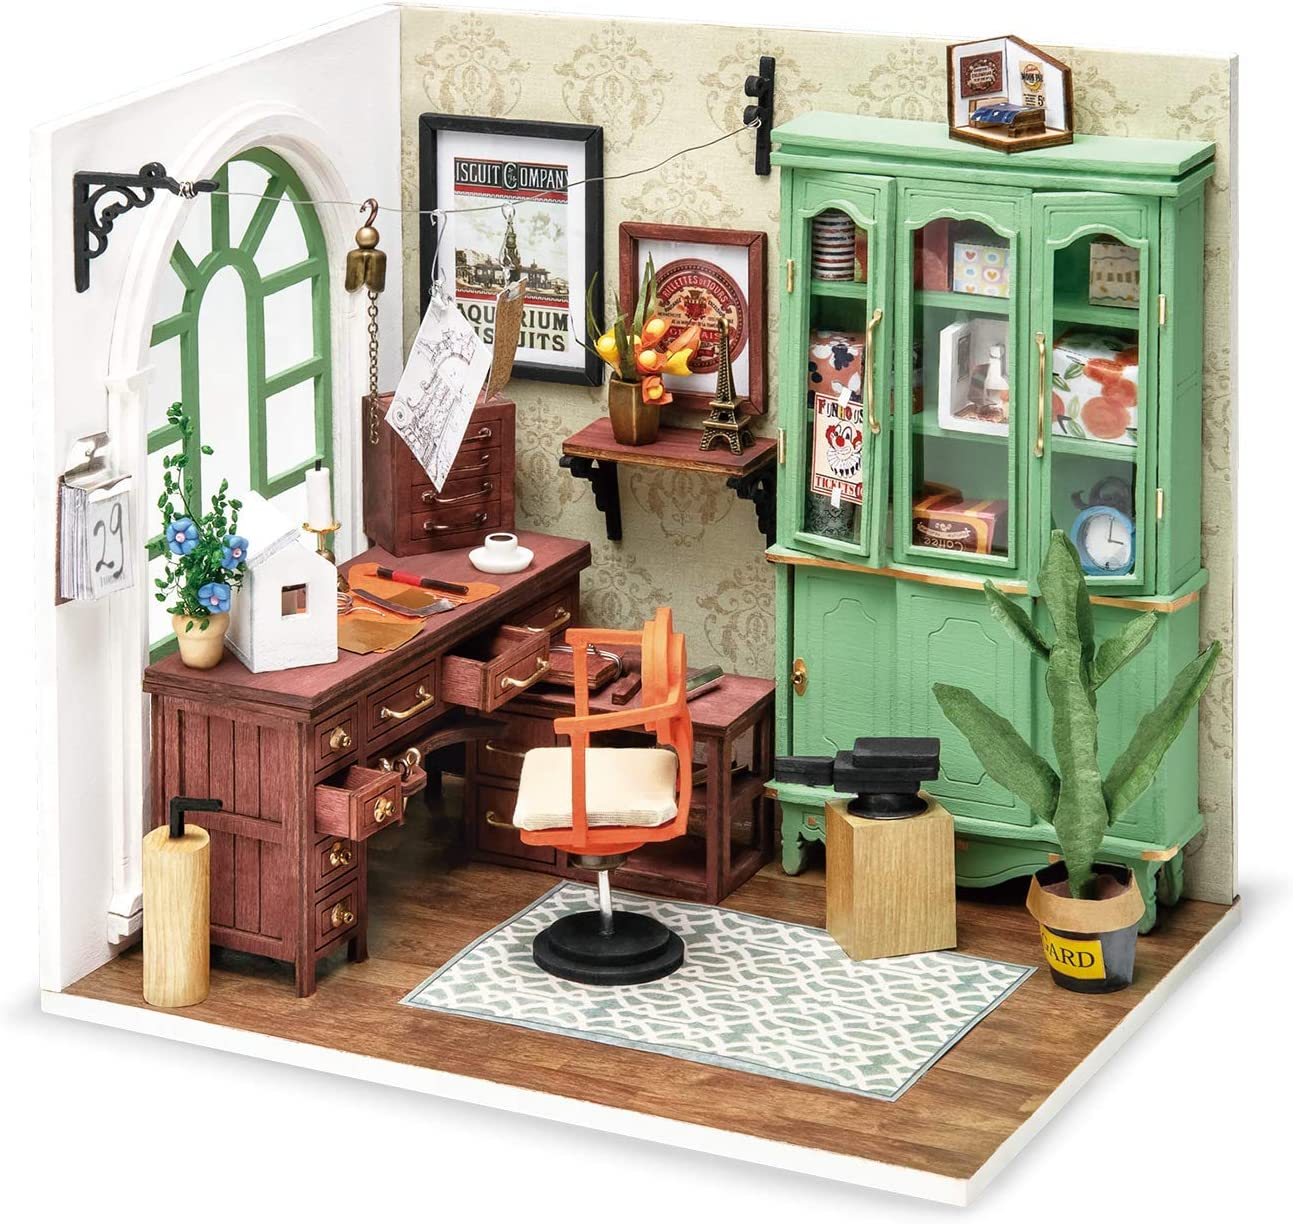 ROBOTIME Dollhouses Miniatures with Furnitures DIY Wooden Room Kit Mini Building Kits for Adults - Jimmy's Studio